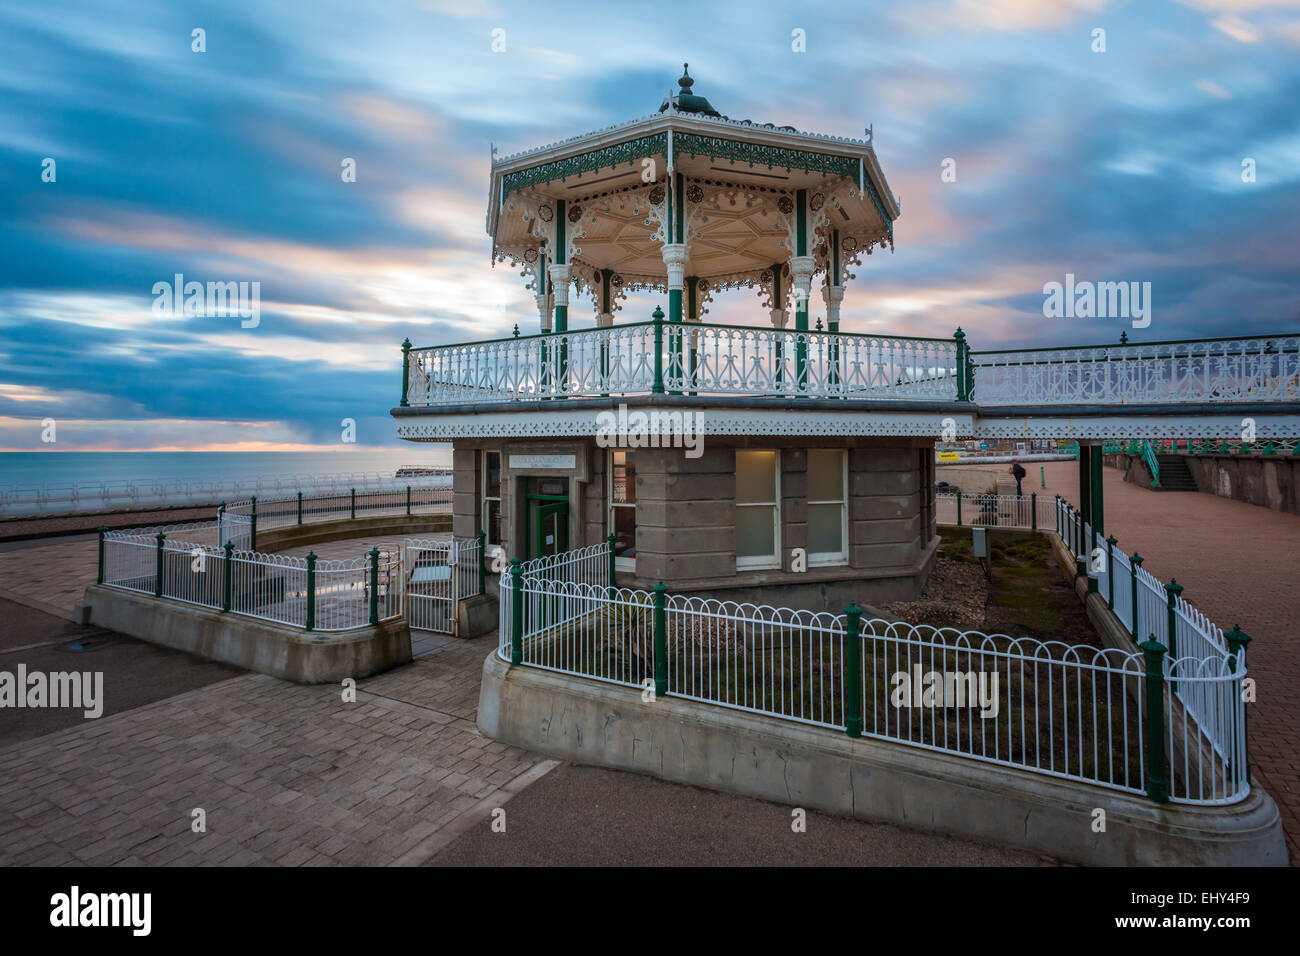 Sunset at the Bandstand in Brighton, East Sussex, England. - Stock Image